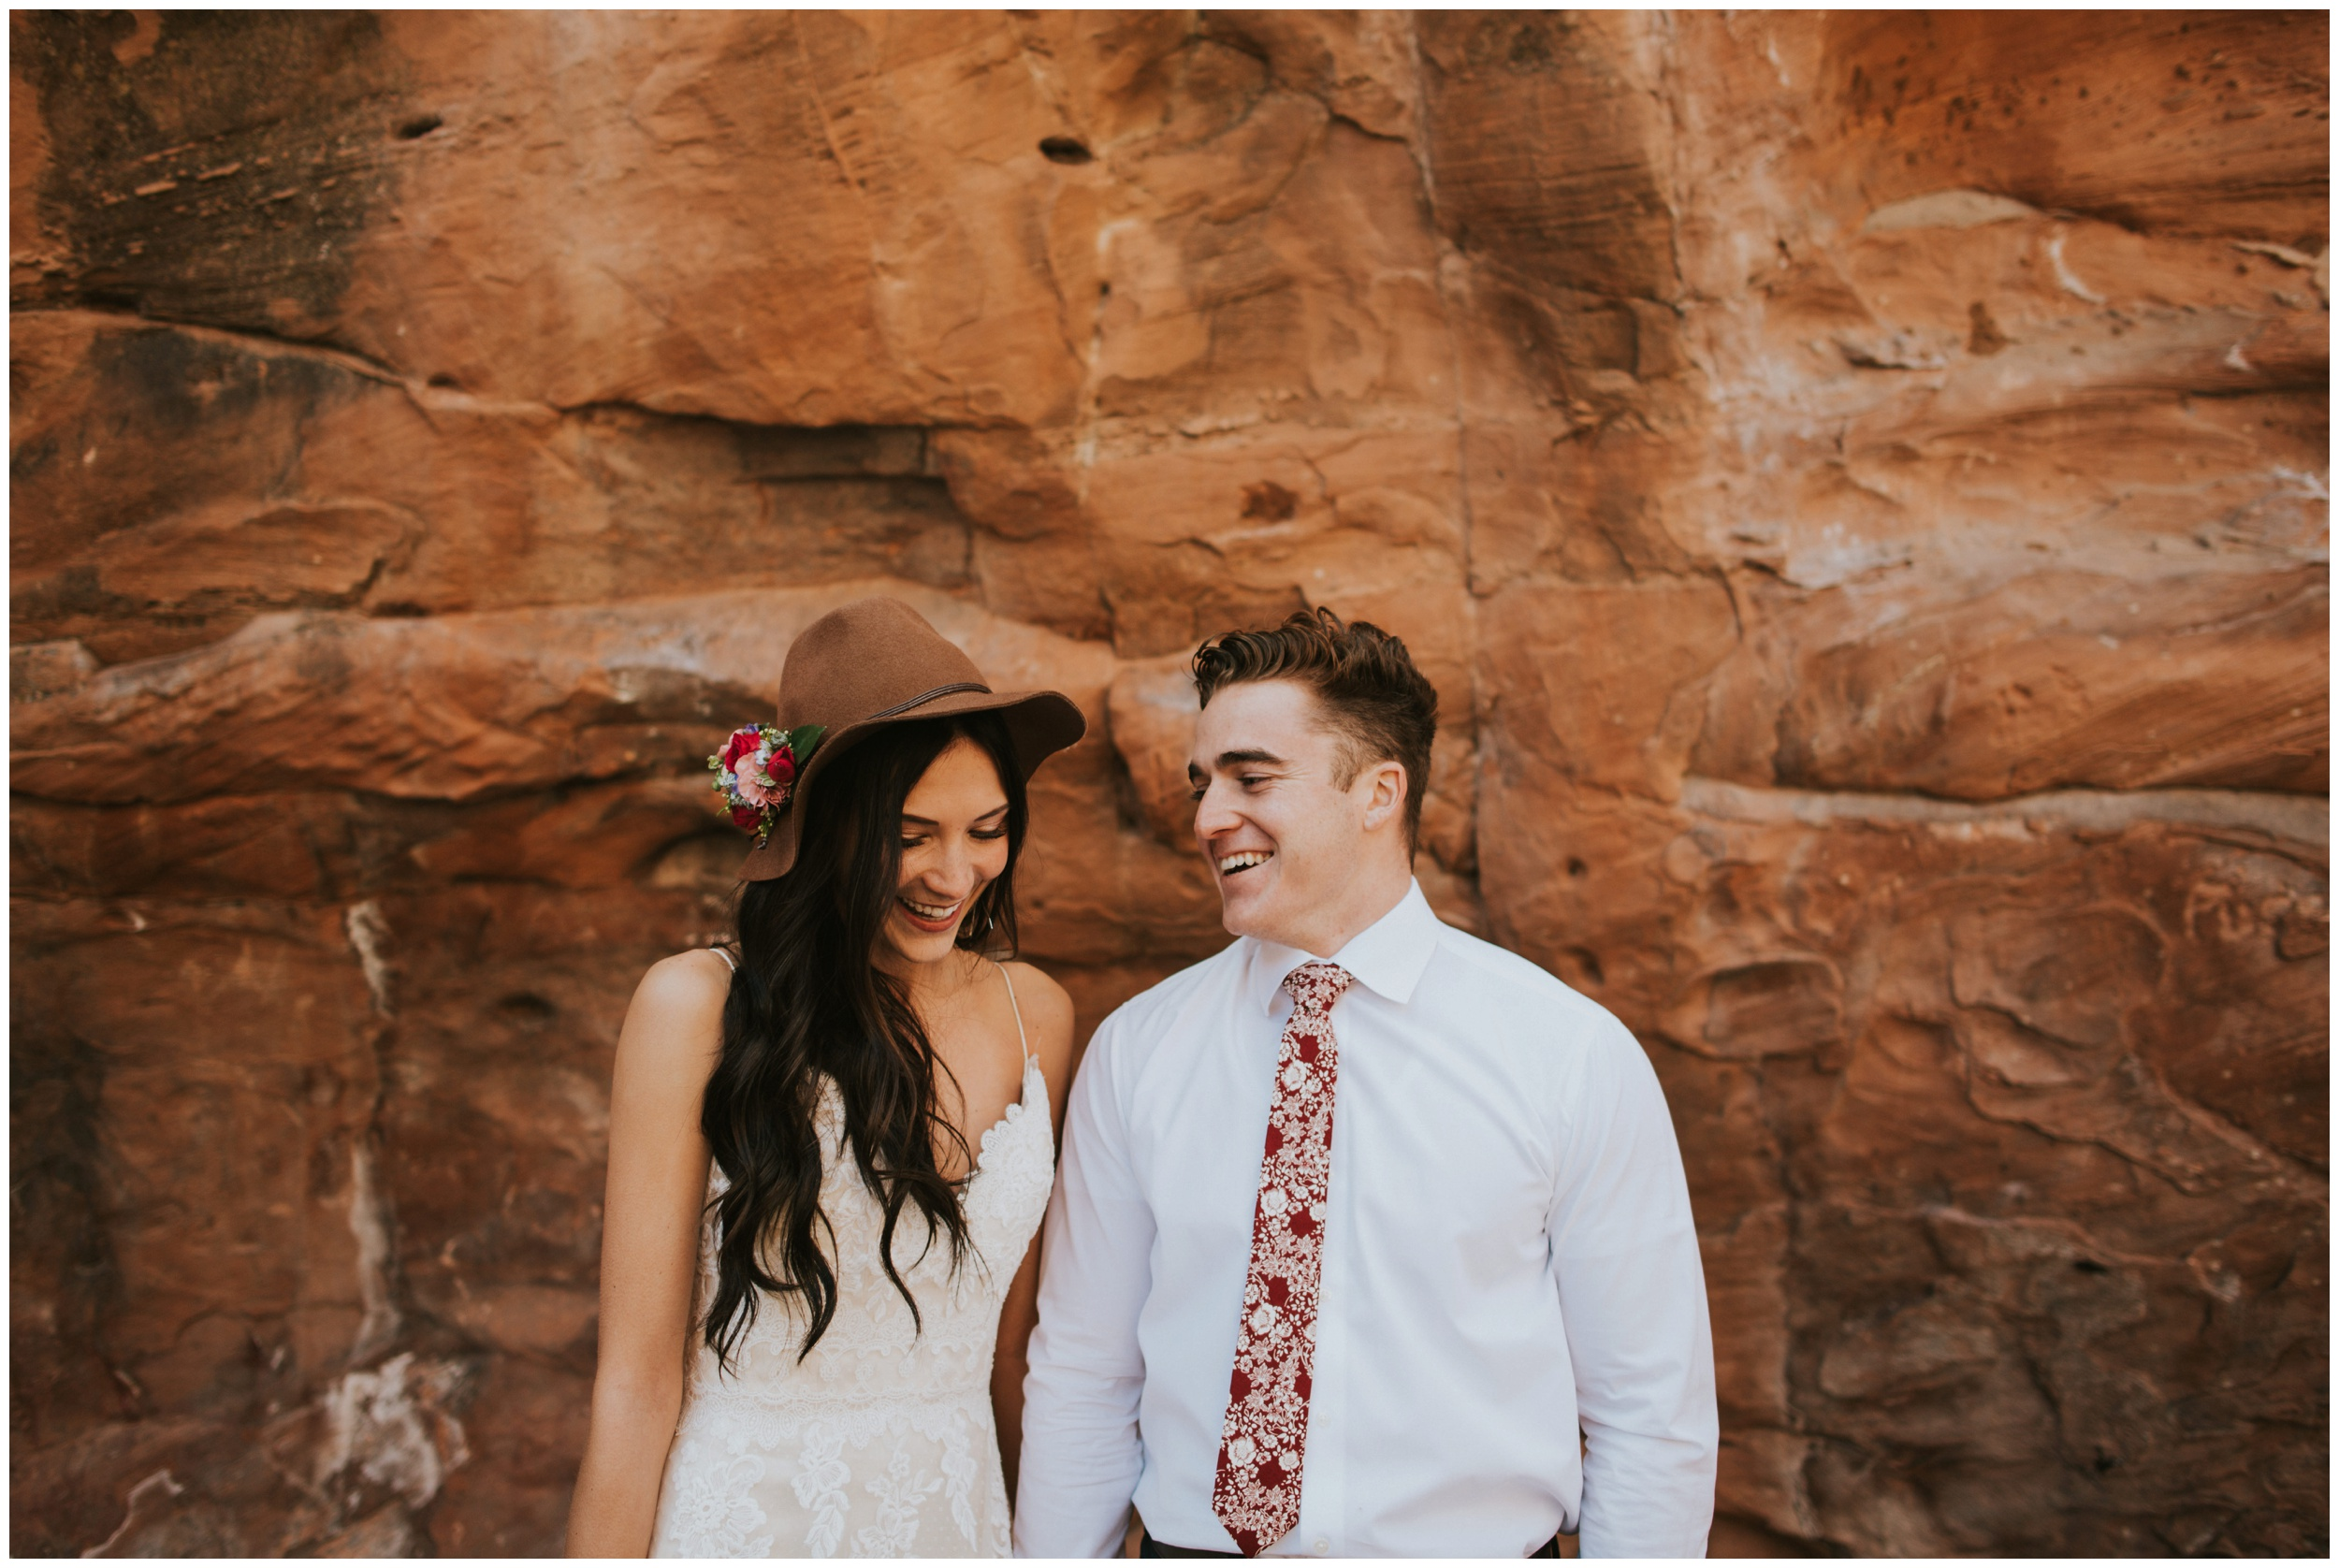 redrockutah-idahophotographer-utahphotographer-wedding-56.jpg